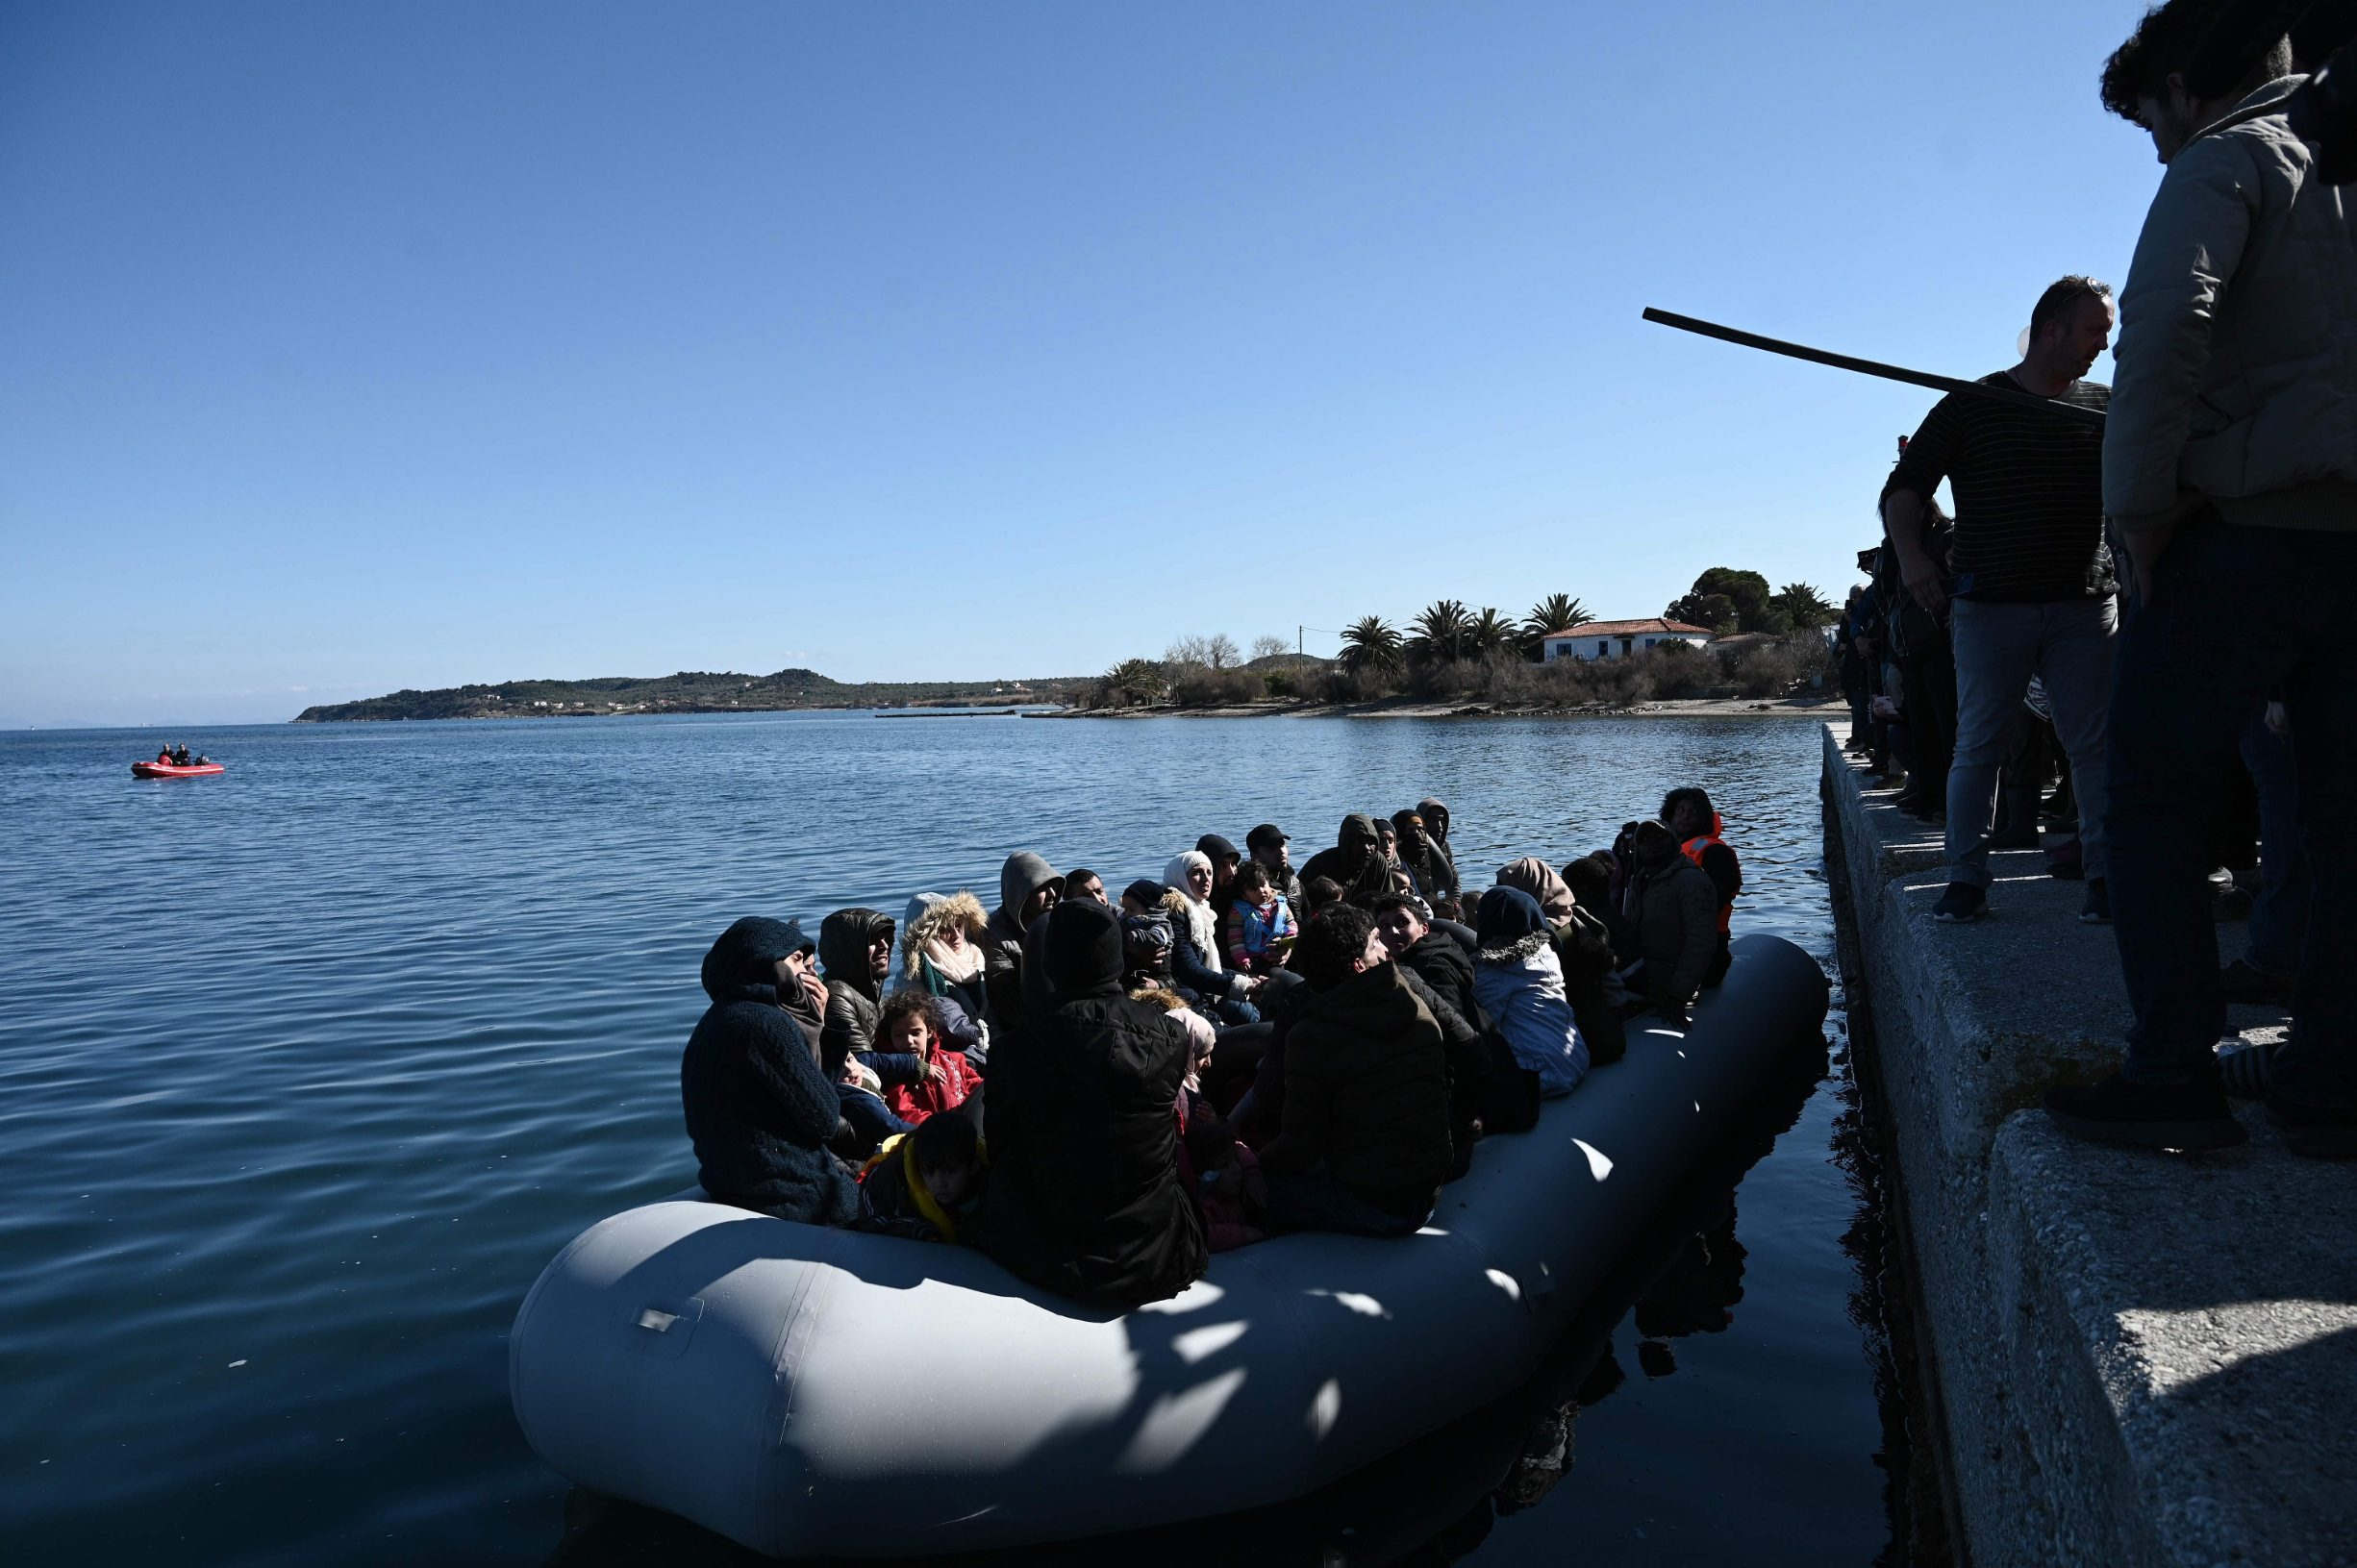 Migrants are seen on an inflatable boat as local residents prevent them from disembarking in Lesbos island, on March 1, 2020. - Greece said Sunday it has blocked nearly 10,000 migrants at its border with Turkey, which opened its gates to Europe as tensions mount over its deepening conflict in Syria.  Migrant numbers have swelled along the rugged frontier after Turkey's president Recep Tayyip Erdogan said it